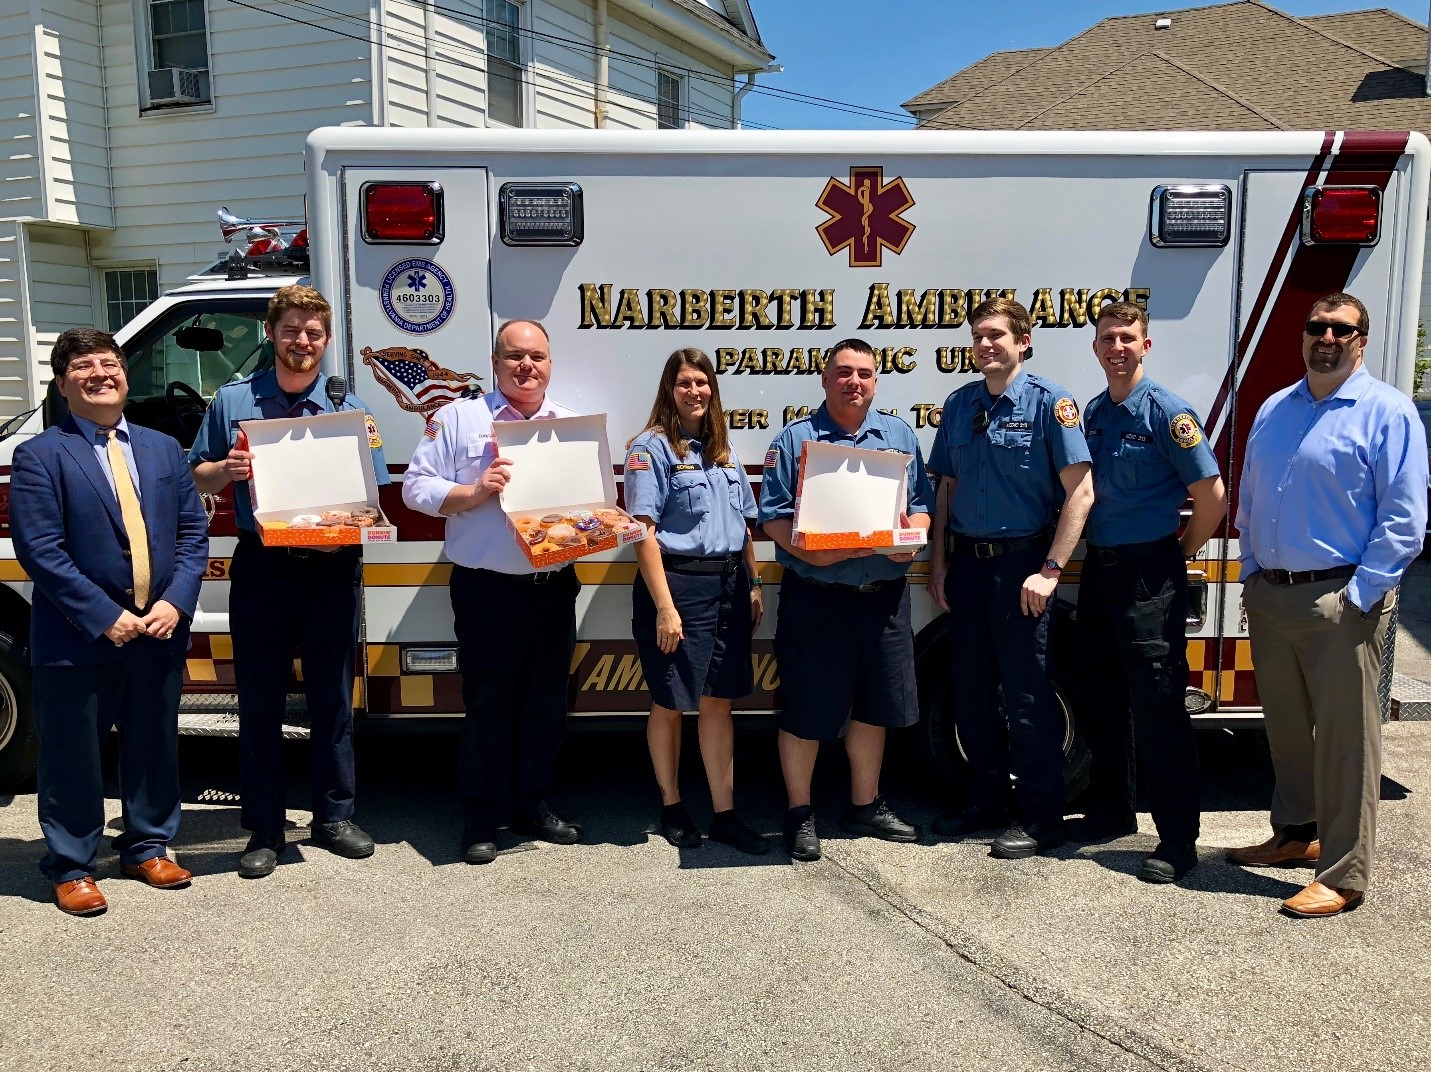 Malvern Bank, National Association Honors Narberth Ambulance in Celebration of EMS Week